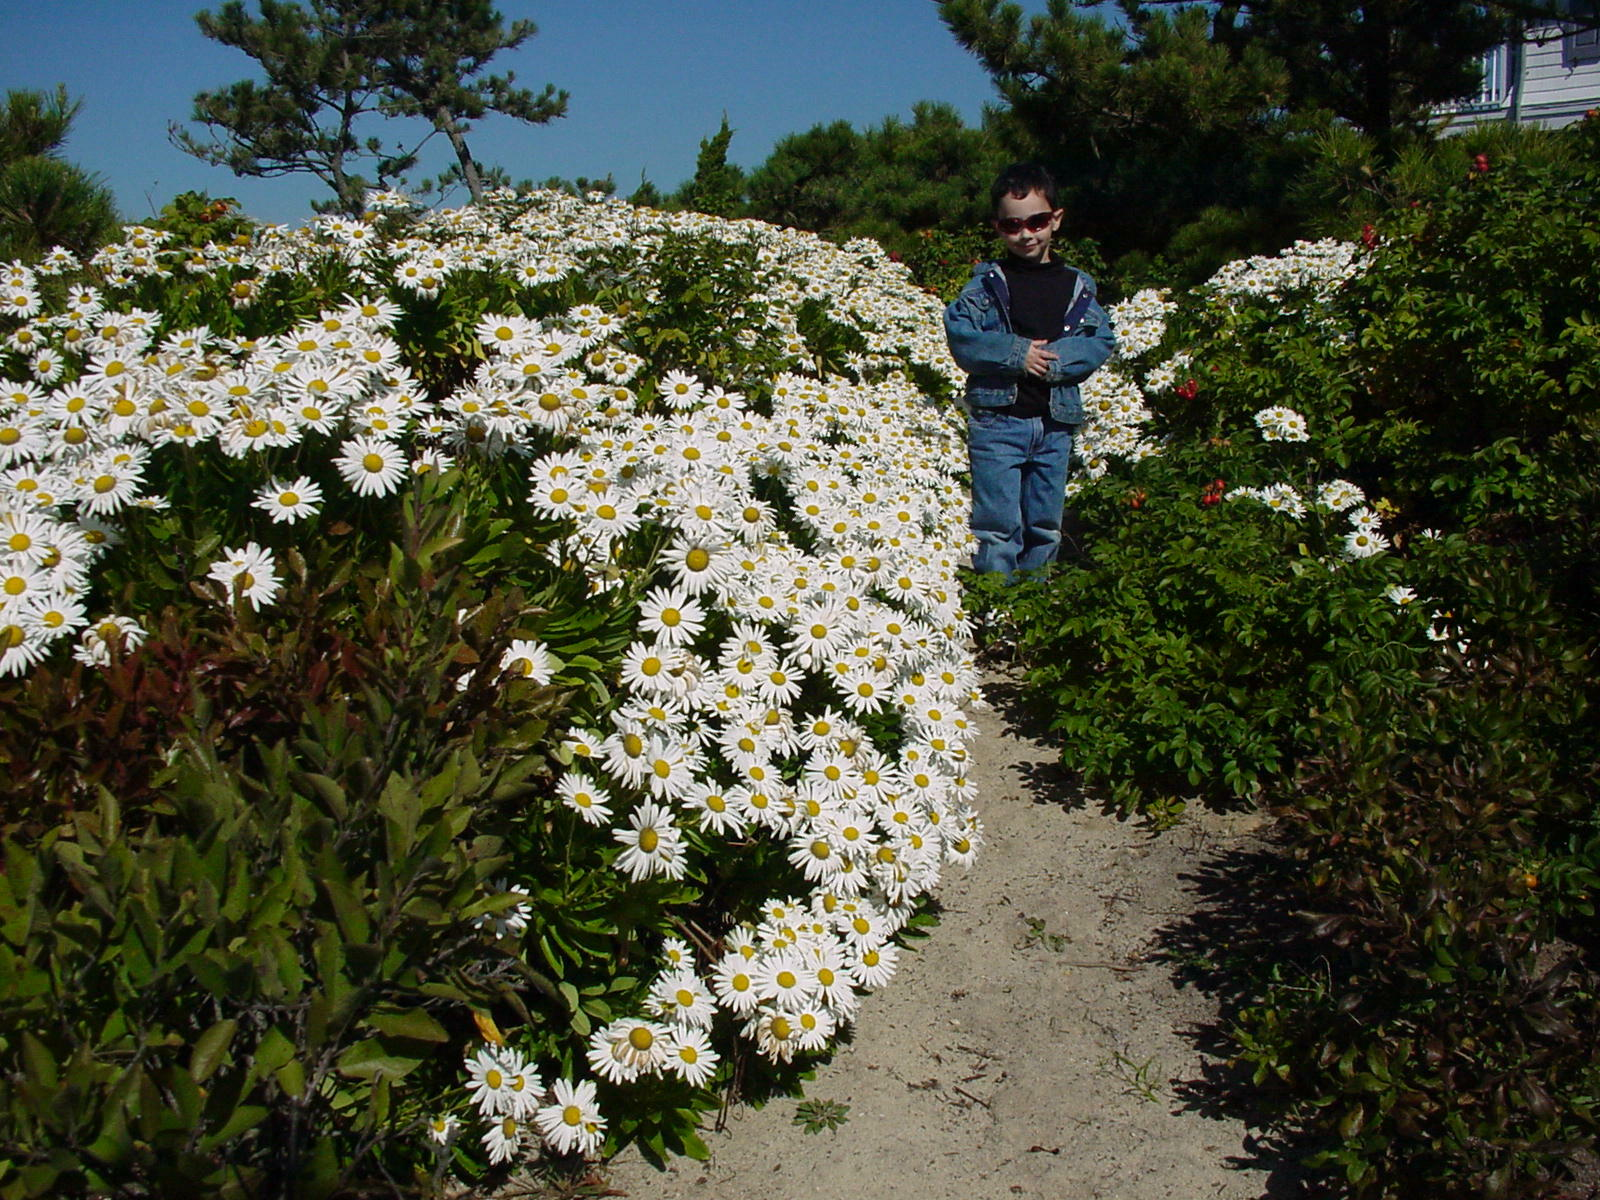 A 4-year-old Hampton Gardener Jr. (now 25) walks down a dune path of Montauk daisies. Note the bright red rose hips from the Rosa rugosa to his right. ANDREW MESSINGER